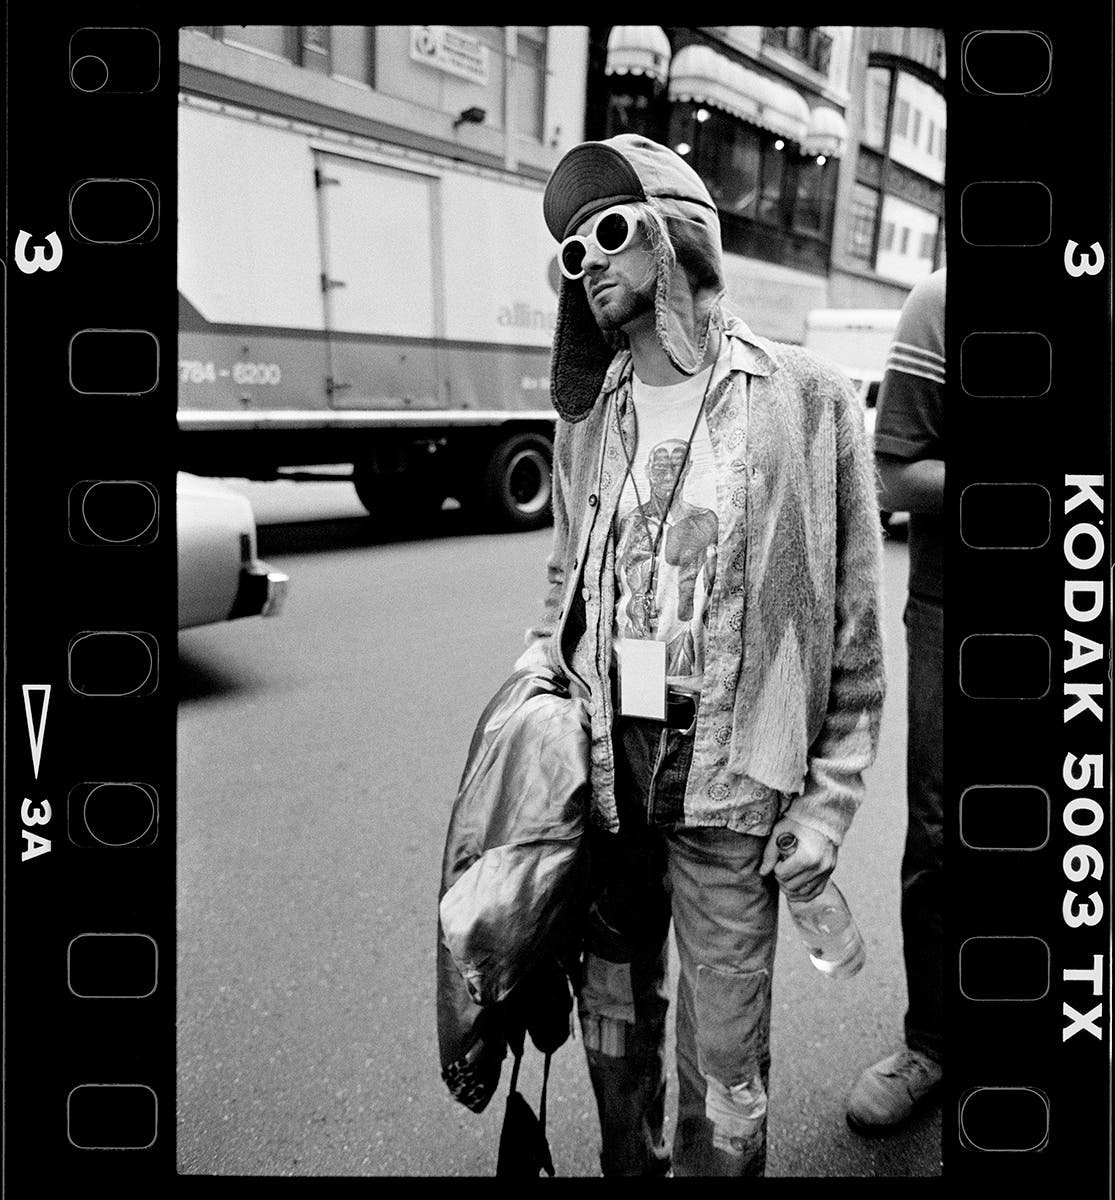 Kurt Cobain's Last Photo Shoot, and Other Stories from Photographers about Music